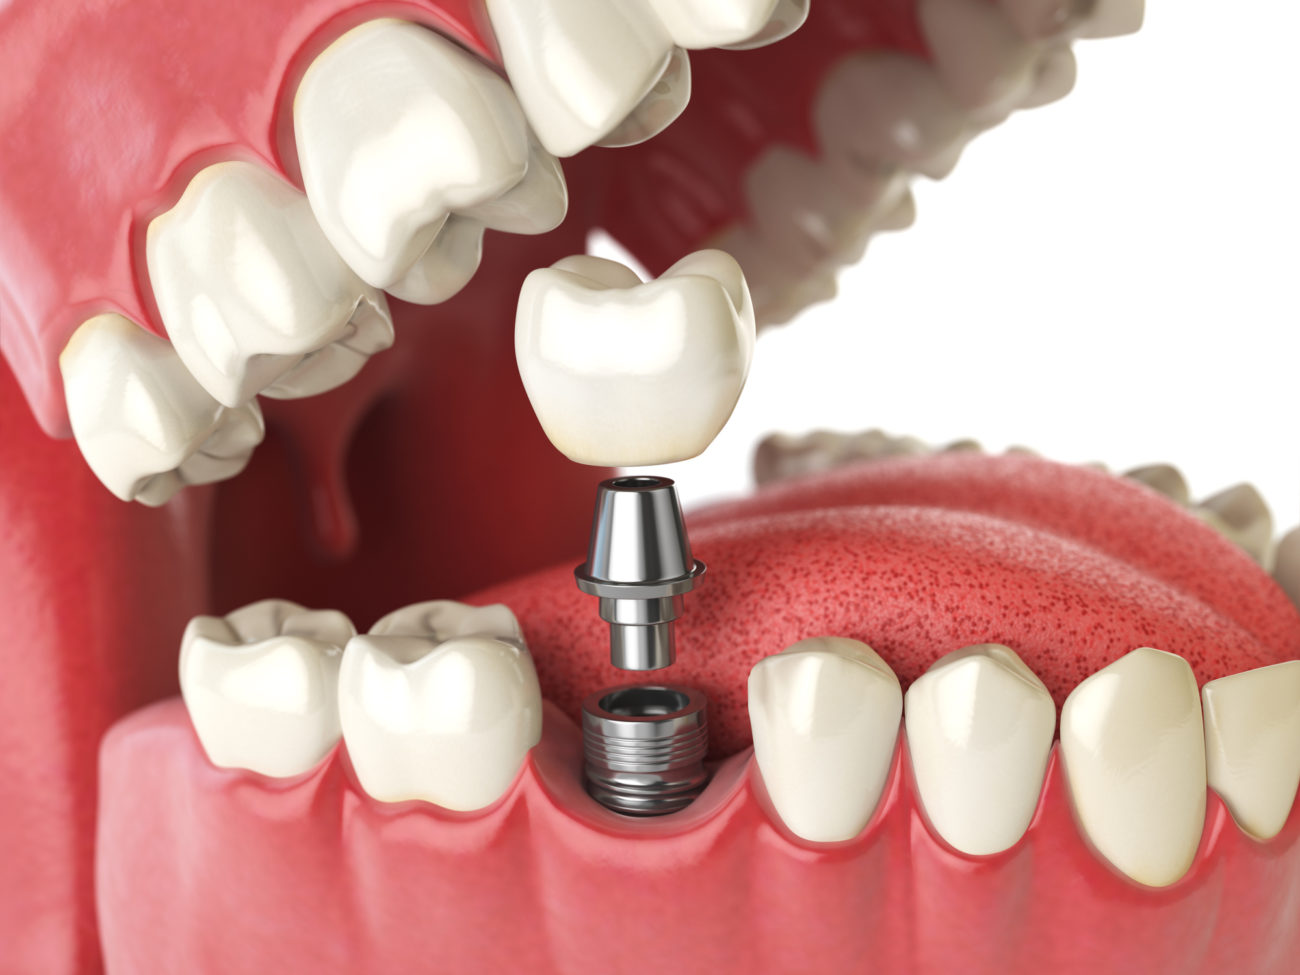 mouth with a single tooth implant